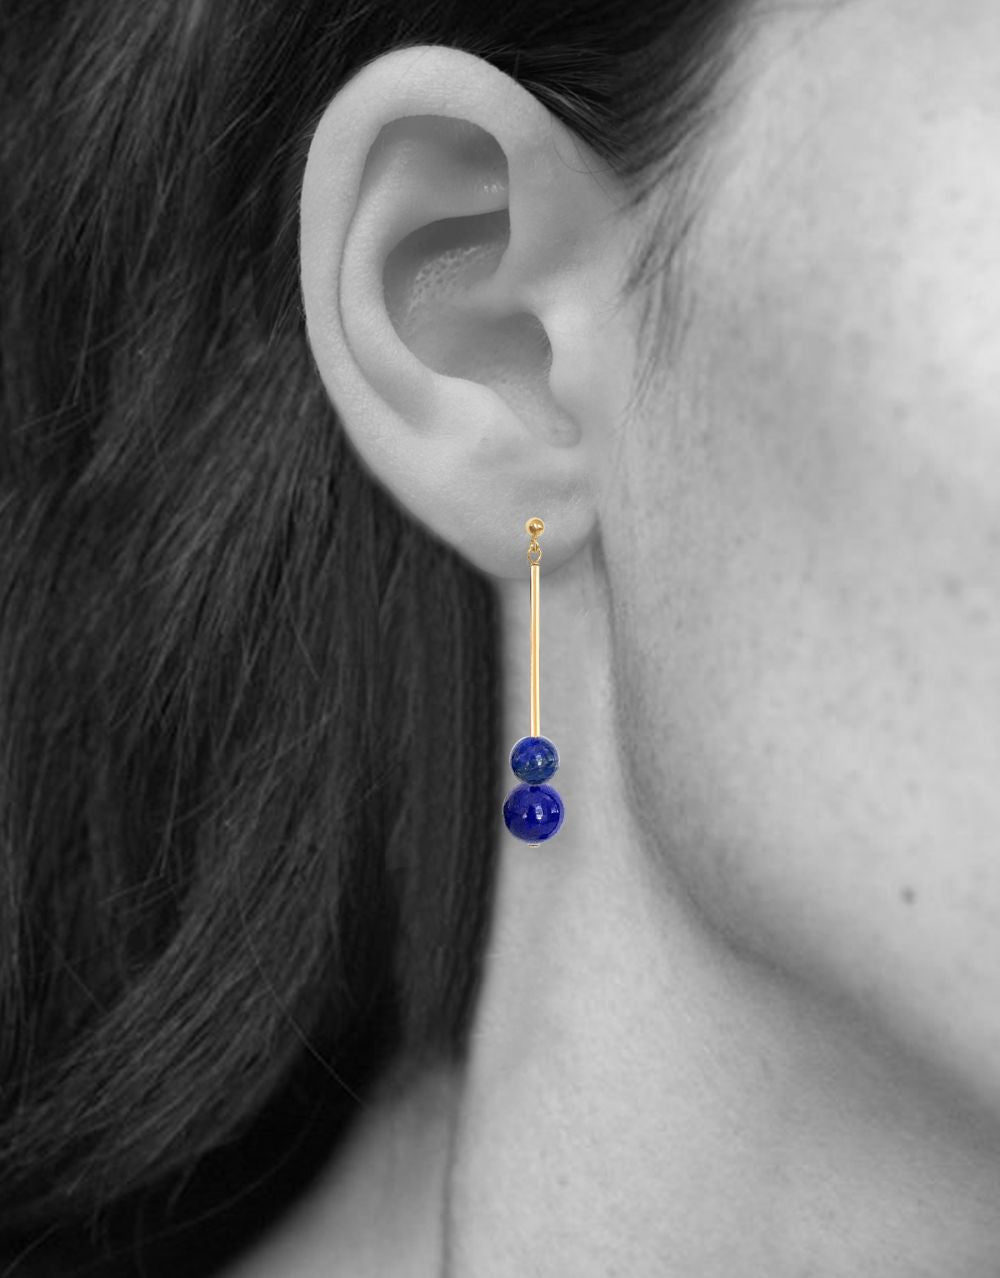 Umbra Double Earrings<br /><i><small>14K Yellow Gold with Lapis Lazuli</small></i><br /> - Eddera